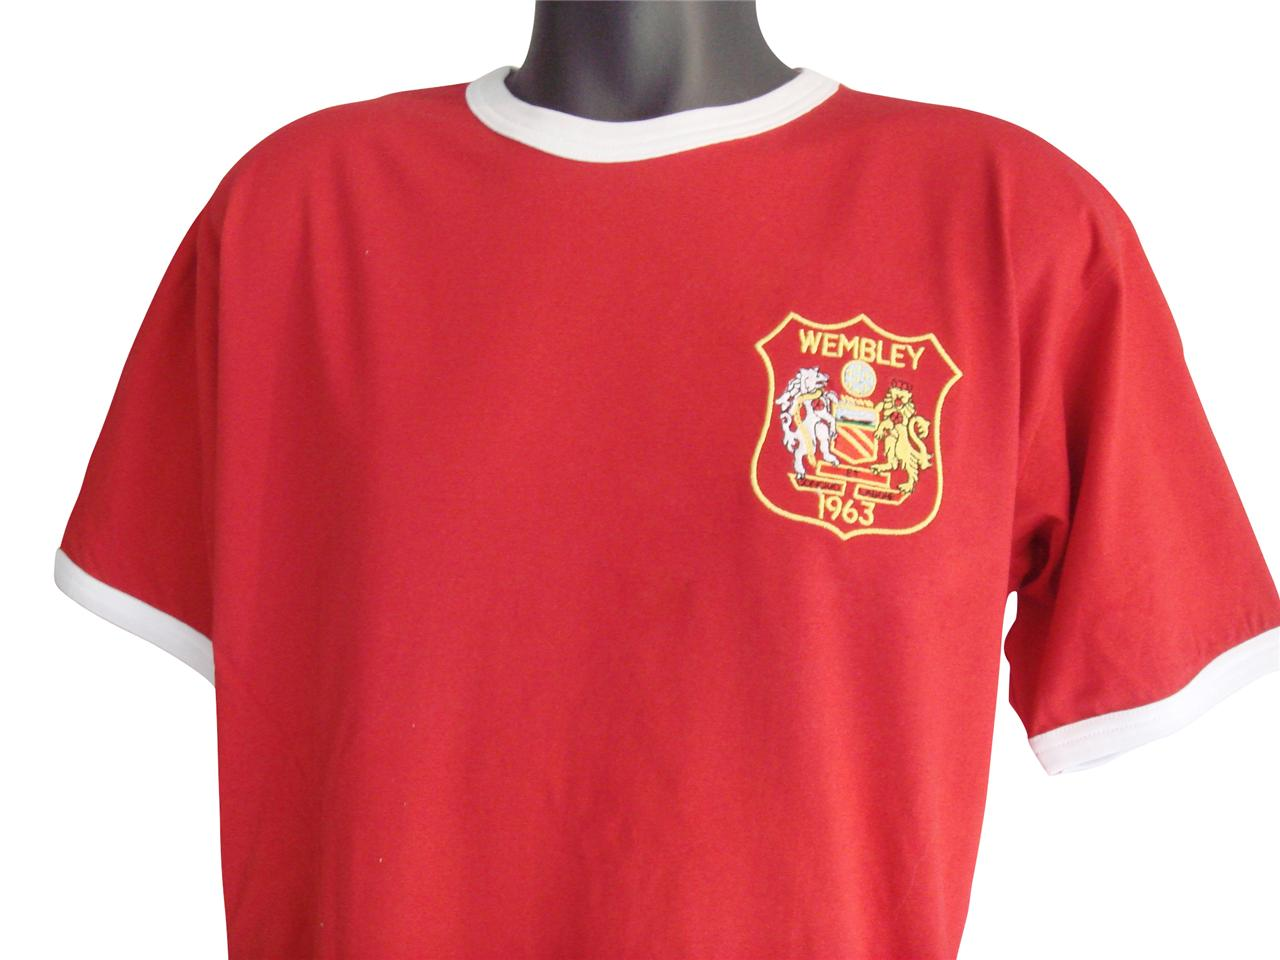 retro manchester united 1963 football t shirt new sizes s xxl embroidered logo ebay. Black Bedroom Furniture Sets. Home Design Ideas